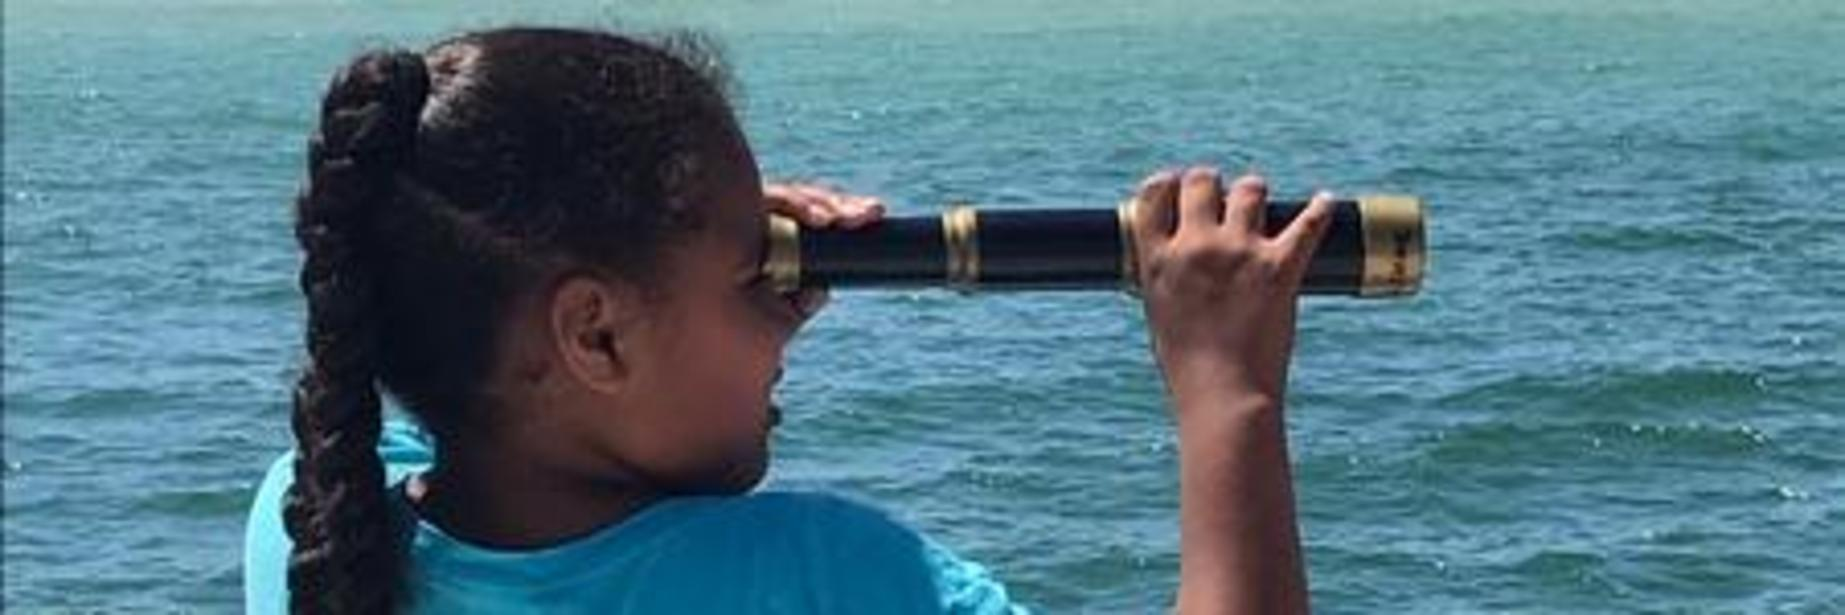 Girl is looking through spyglass on pirate ship